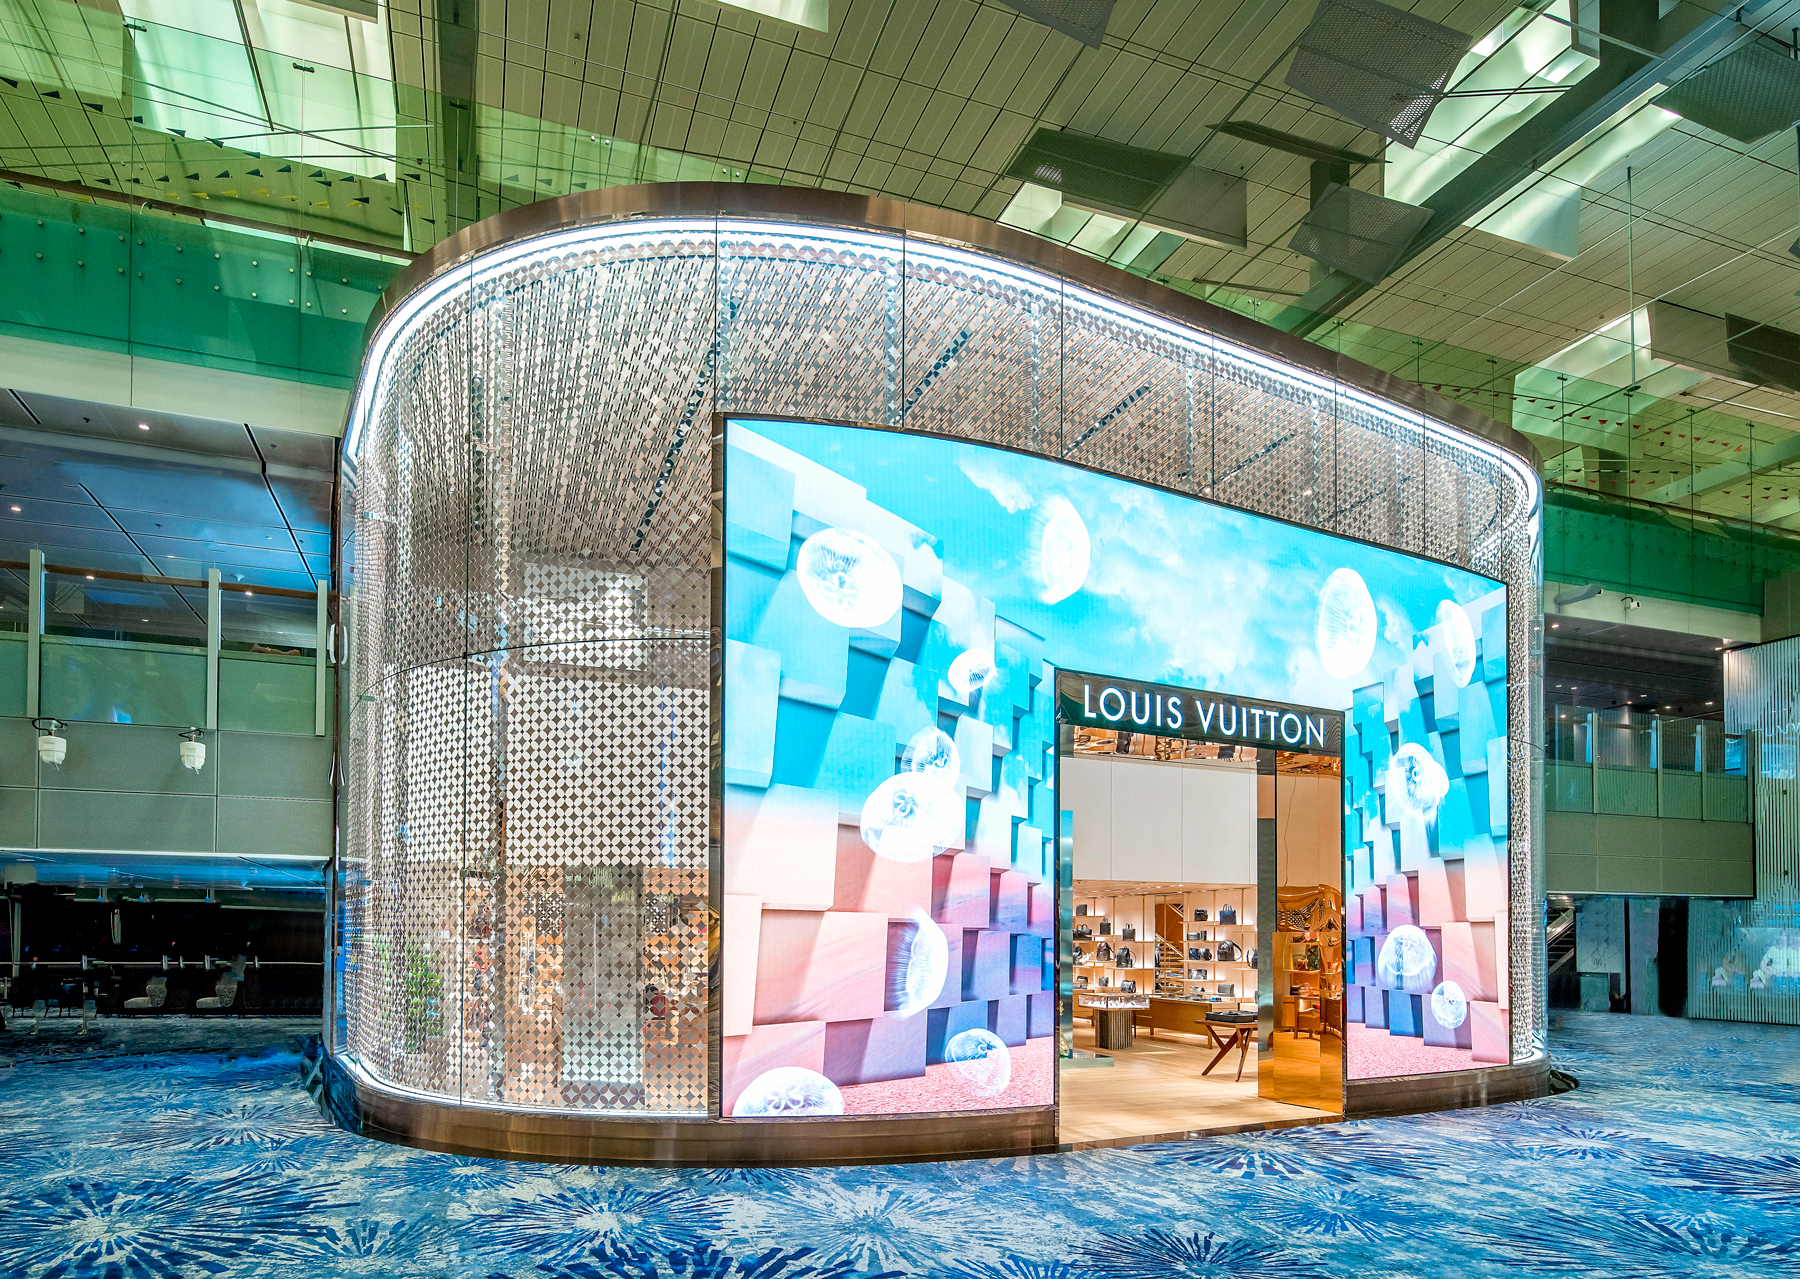 Store explore: Louis Vuitton opens first airport boutique in South Asia at Changi